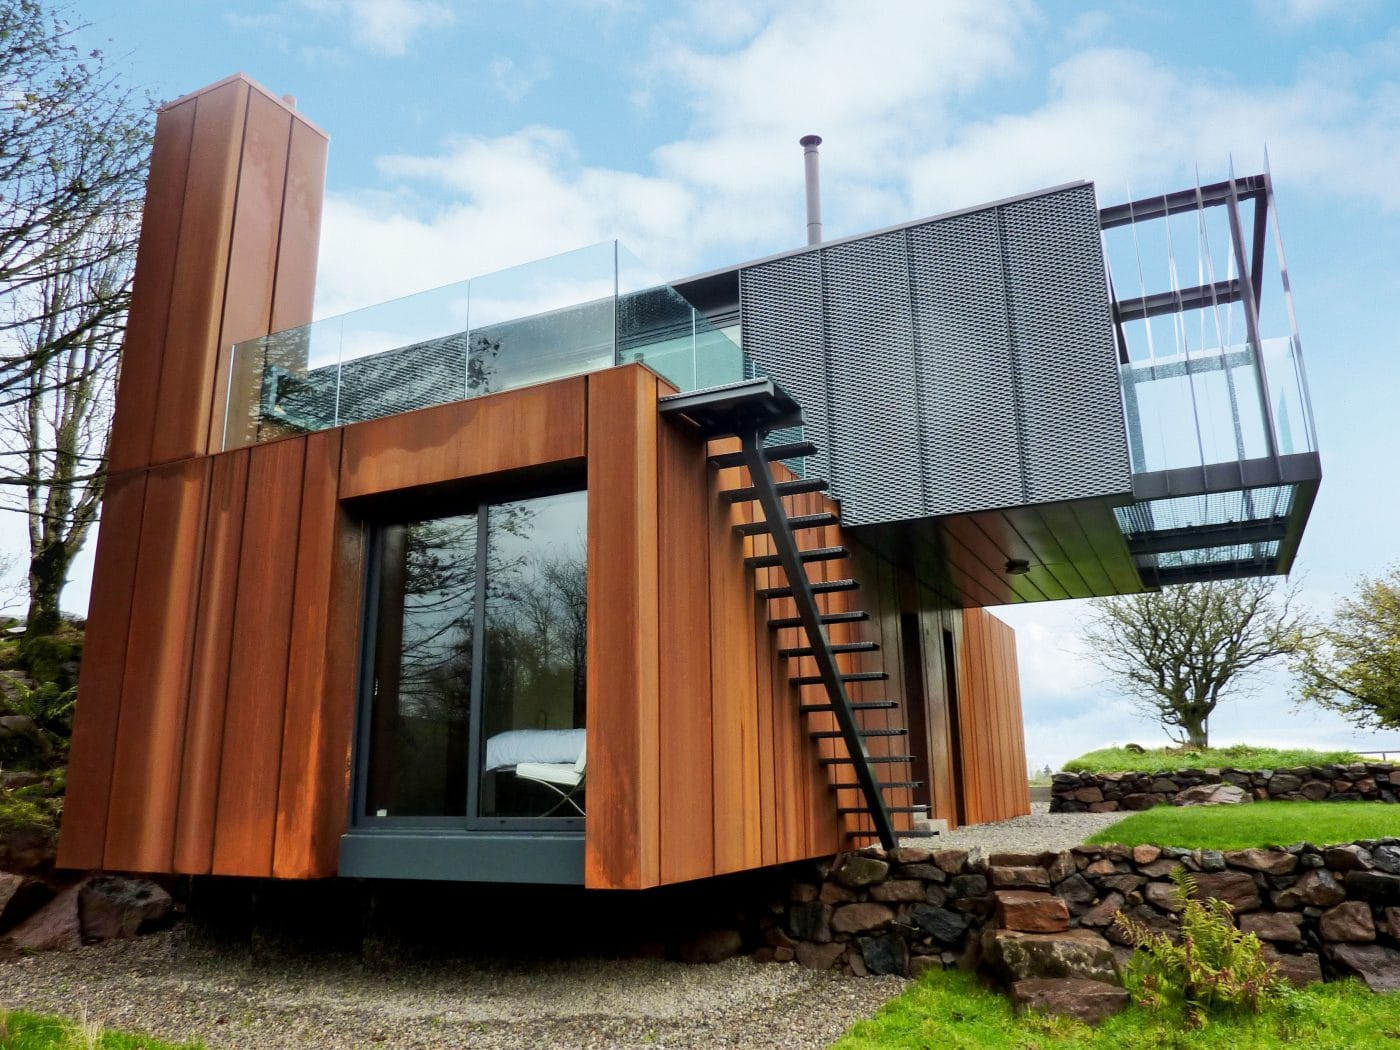 Grand designs shipping container home by patrick bradley for Shipping container homes plans